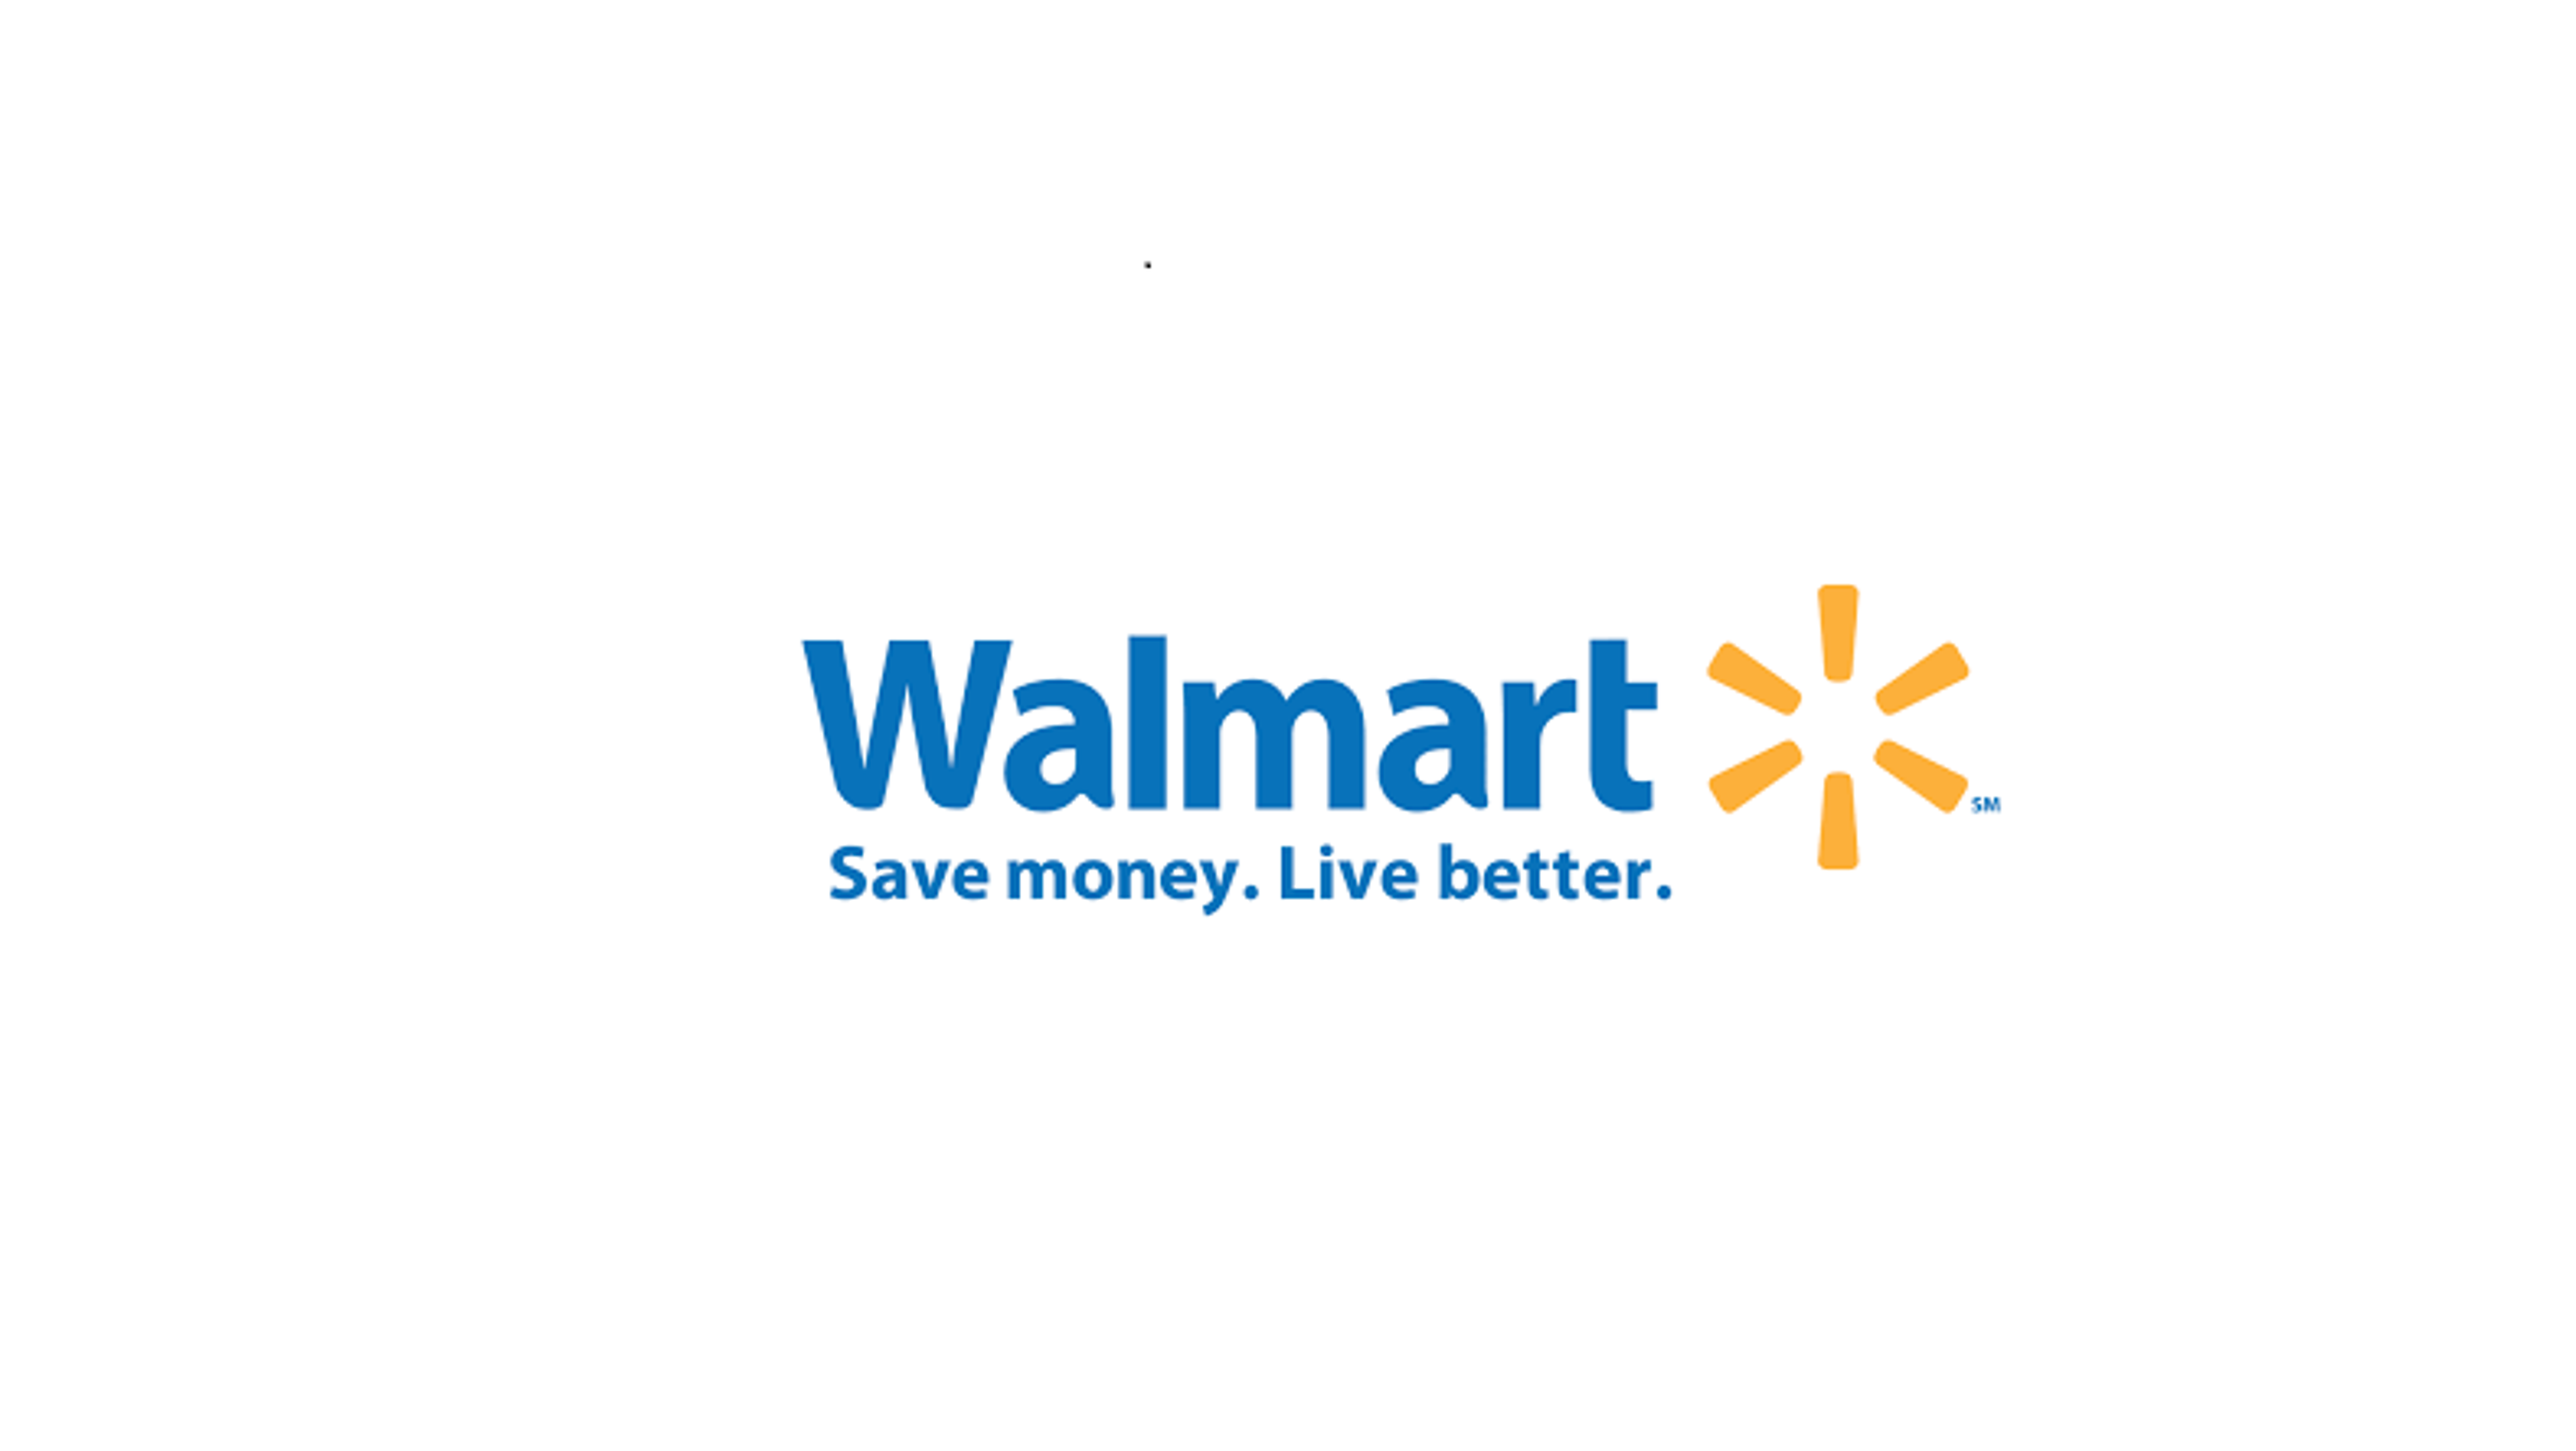 Walmart\'s ecommerce surge brings 400 jobs to Shepherdsville